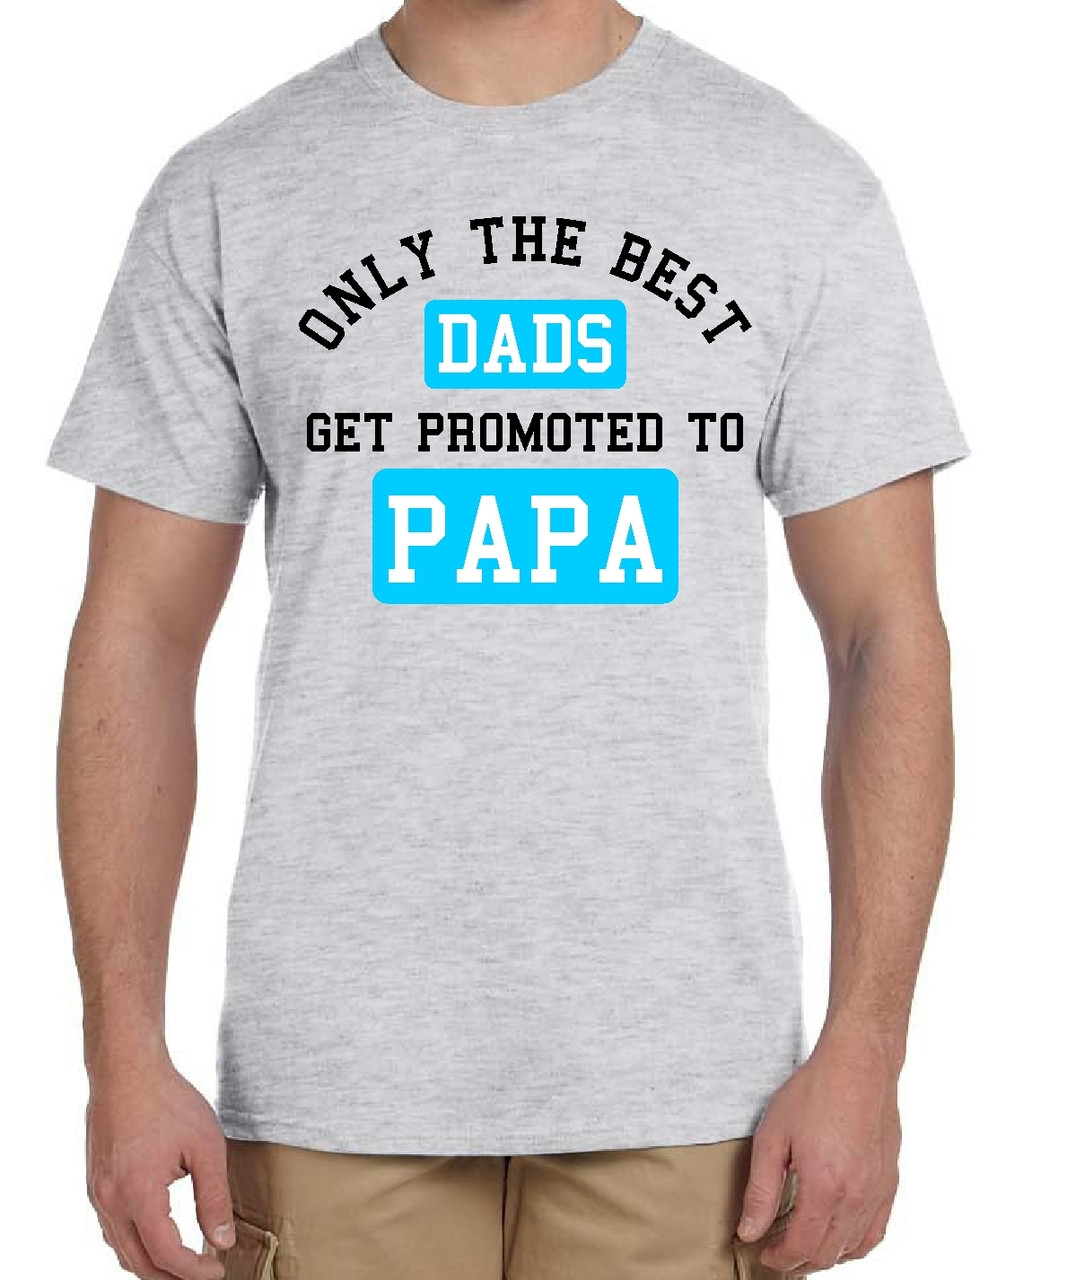 a4a54434 Pregnancy announcement shirt. Only the Best Dads get promoted to Papa!